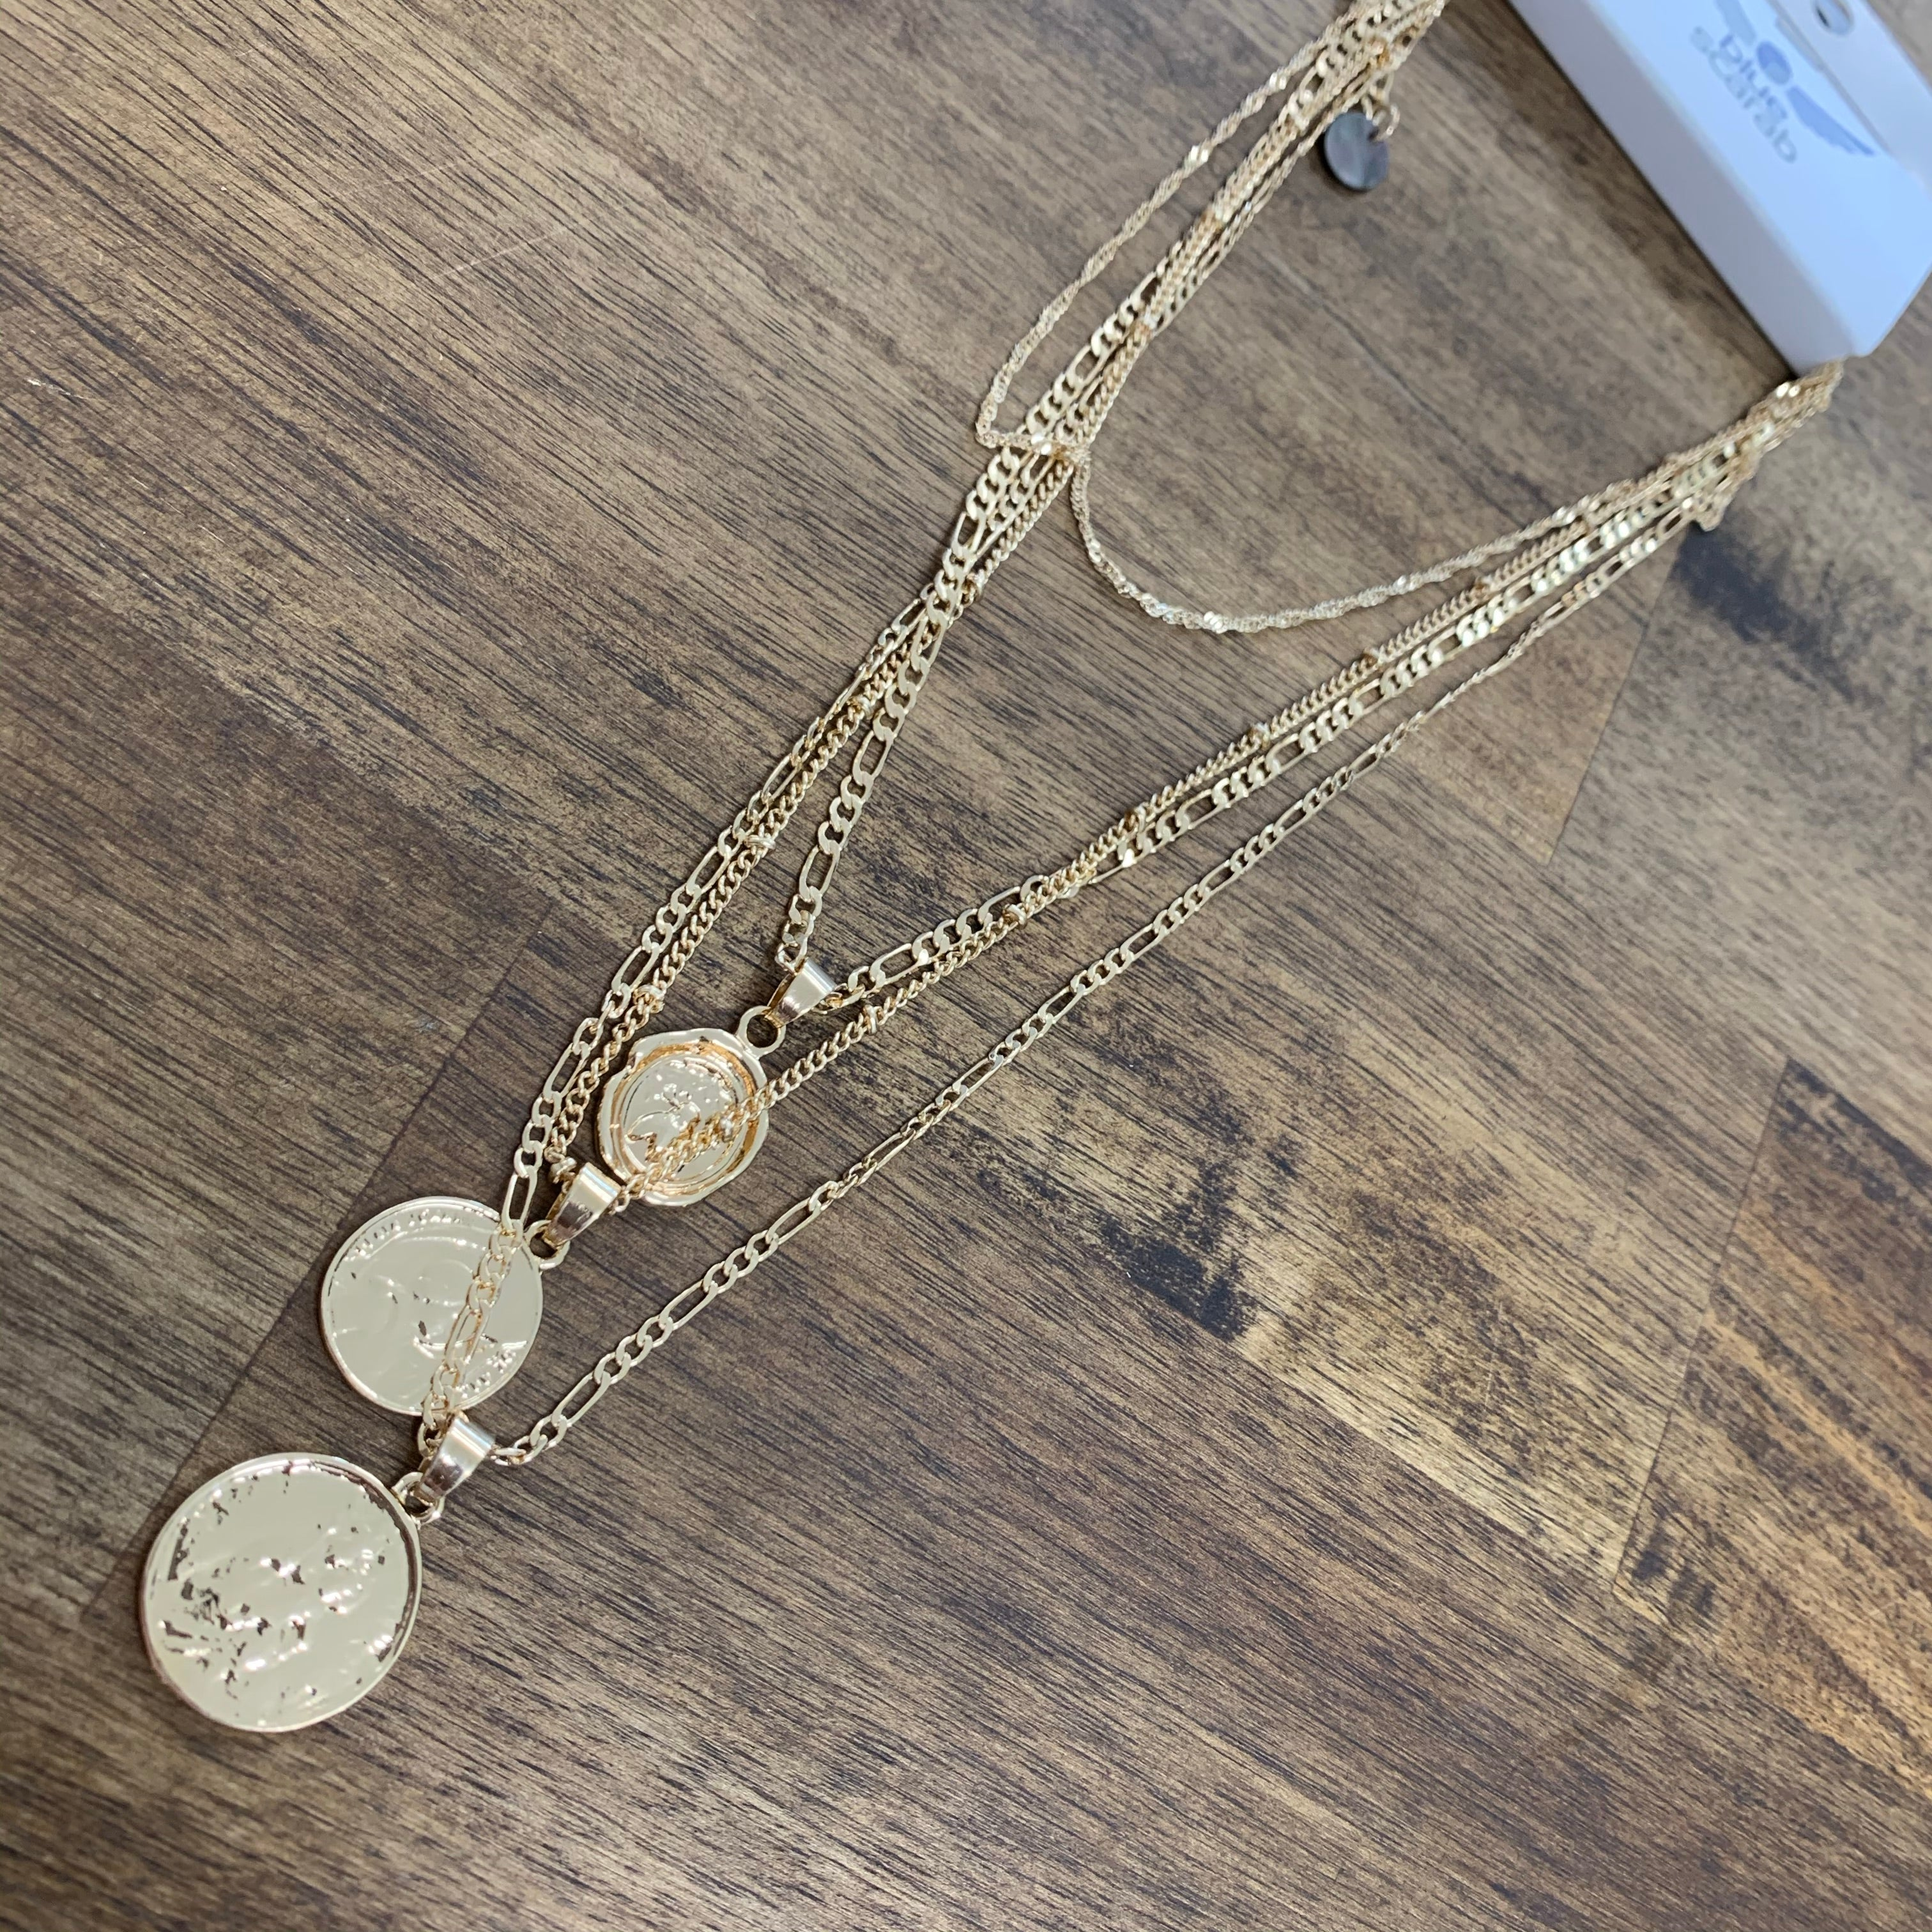 Gold layered necklace with large gold coins